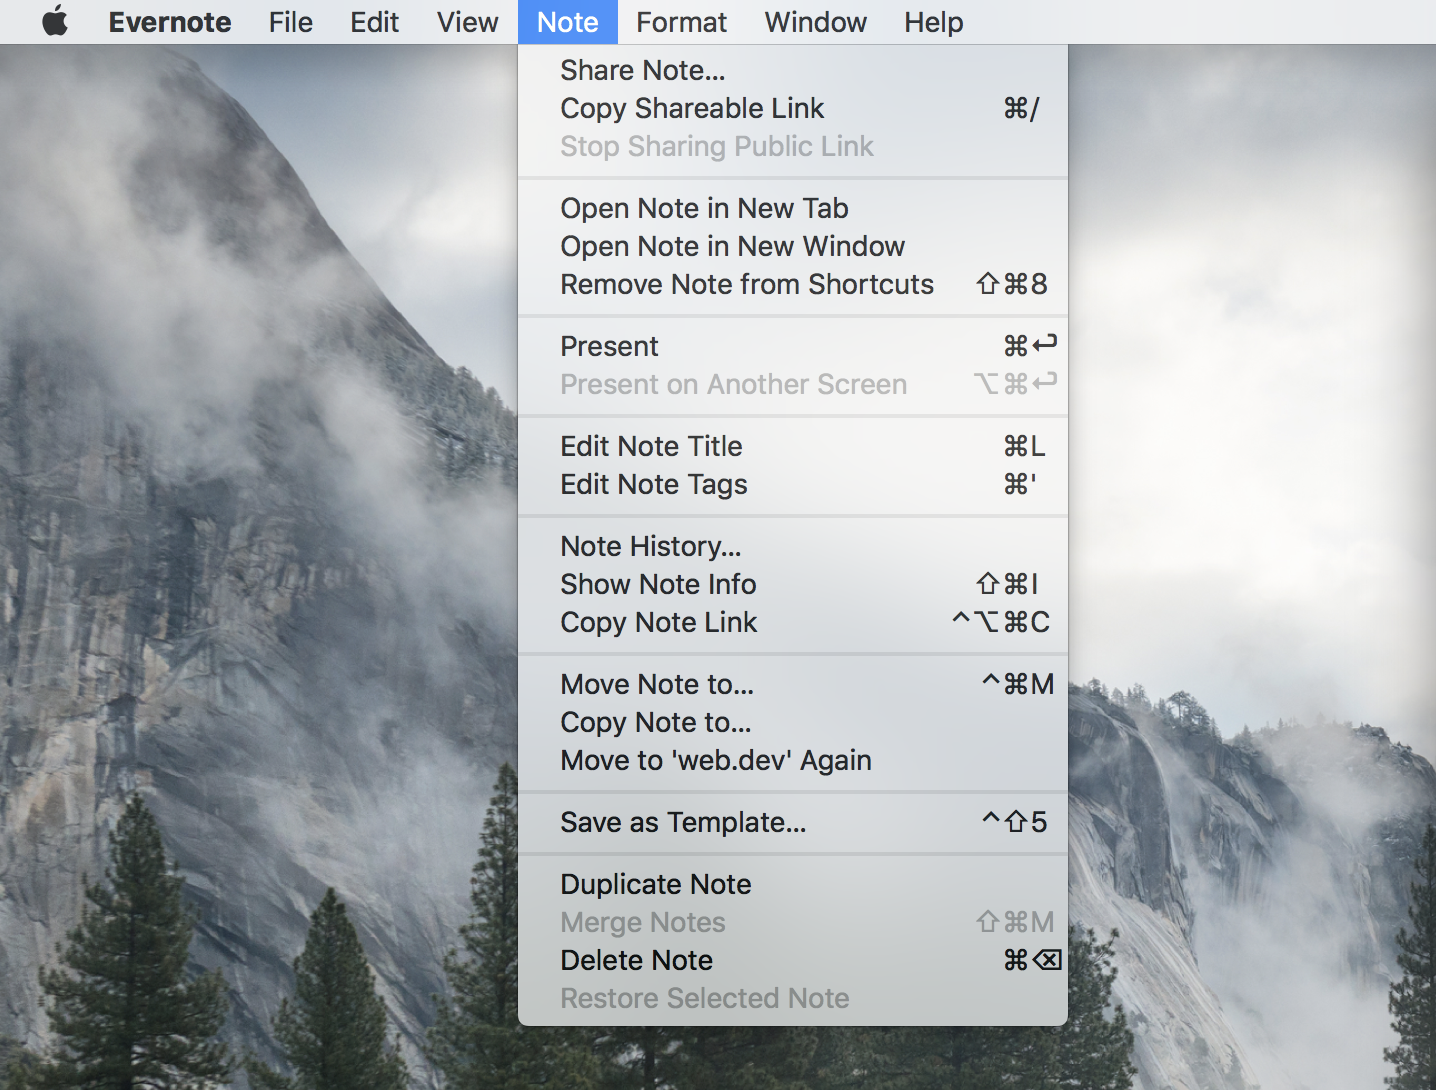 The menu bar for Evernote, showing the Note submenu